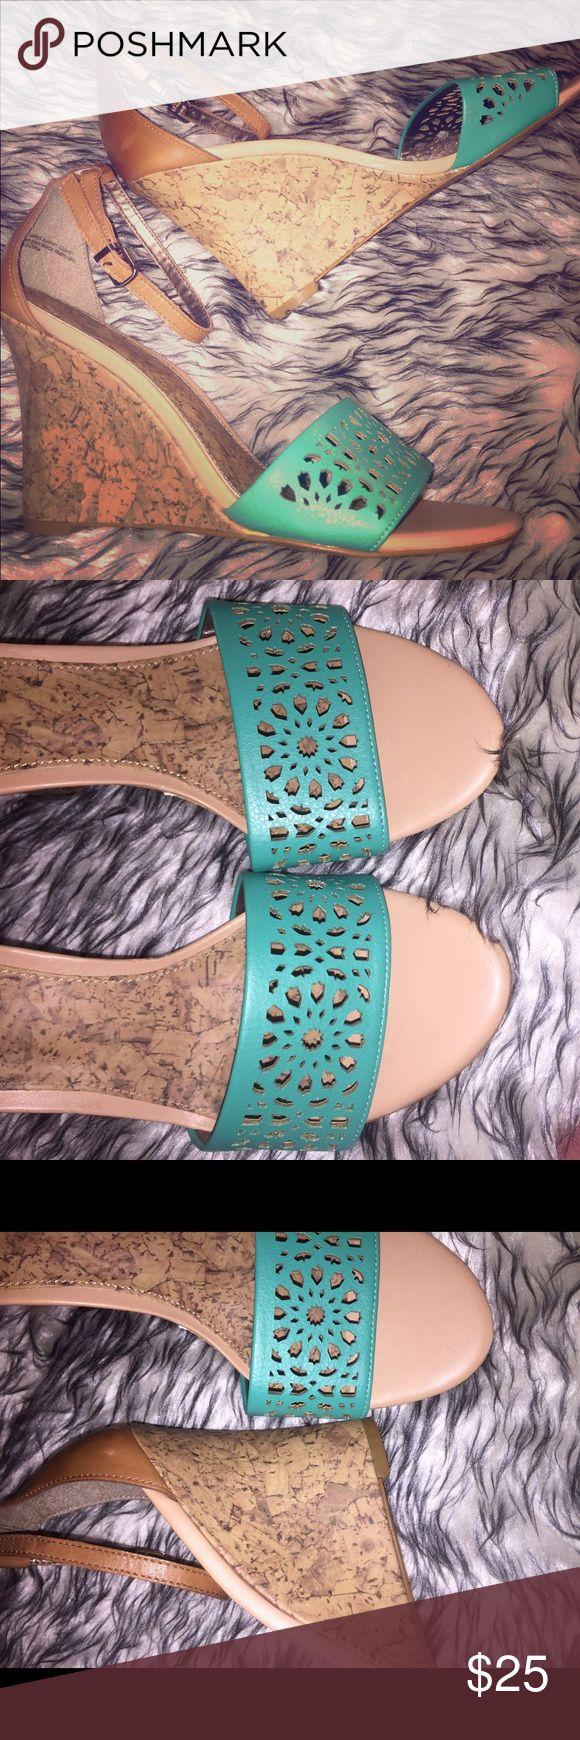 Turquoise wedges Chic Ann Taylor Loft wedge sandals. EUC. Turquoise and tan with a scalloped design and a smell wedge heel. Size 7m. Perfect for date night or paired with jeans.  Really feminine!    Tags: work wear , spring , bright , teal, wedges, Anne Taylor LOFT Shoes Wedges